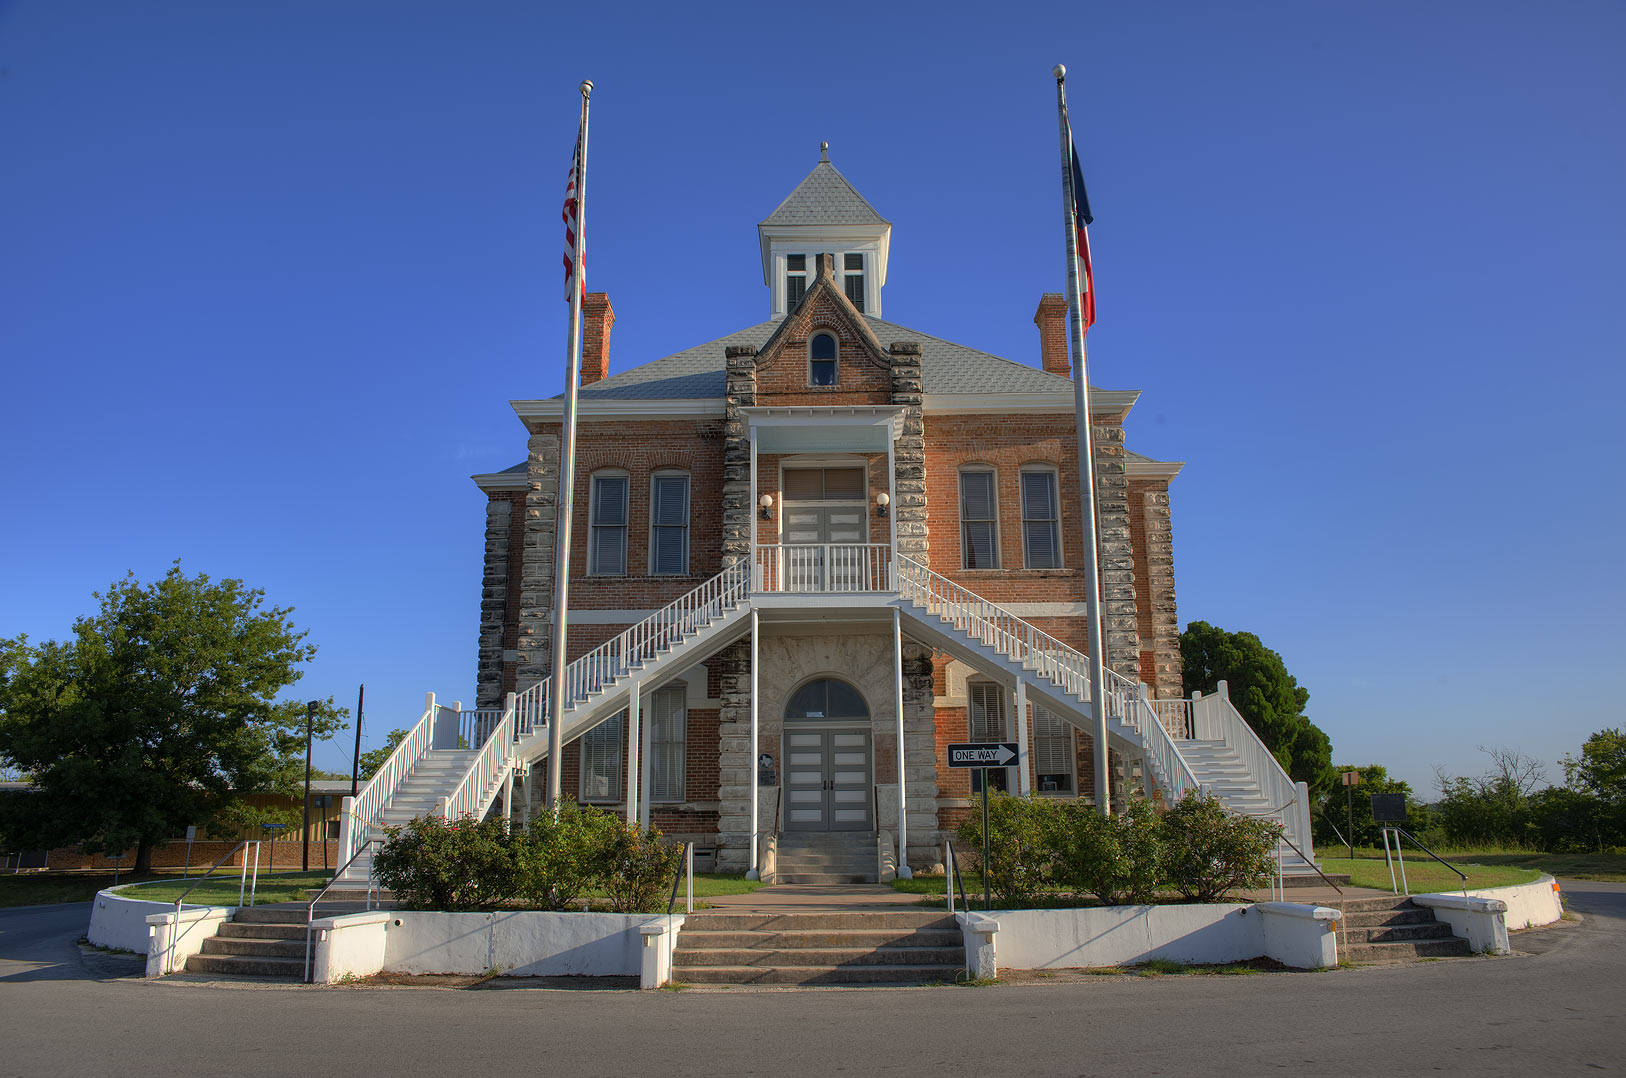 Grimes County Courthouse. Anderson, Texas